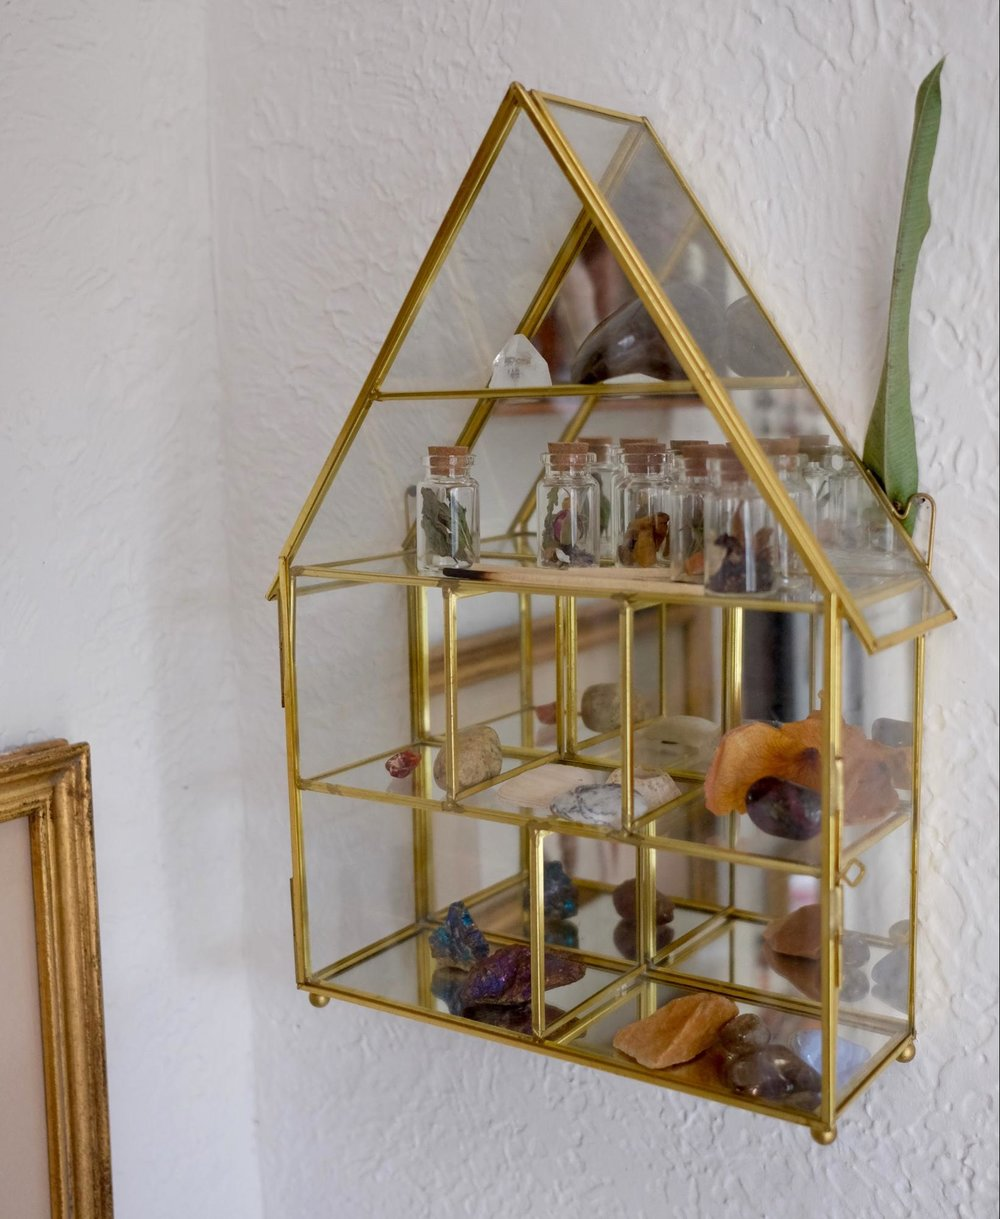 Gold framed glass display. Displays more botanical curios.